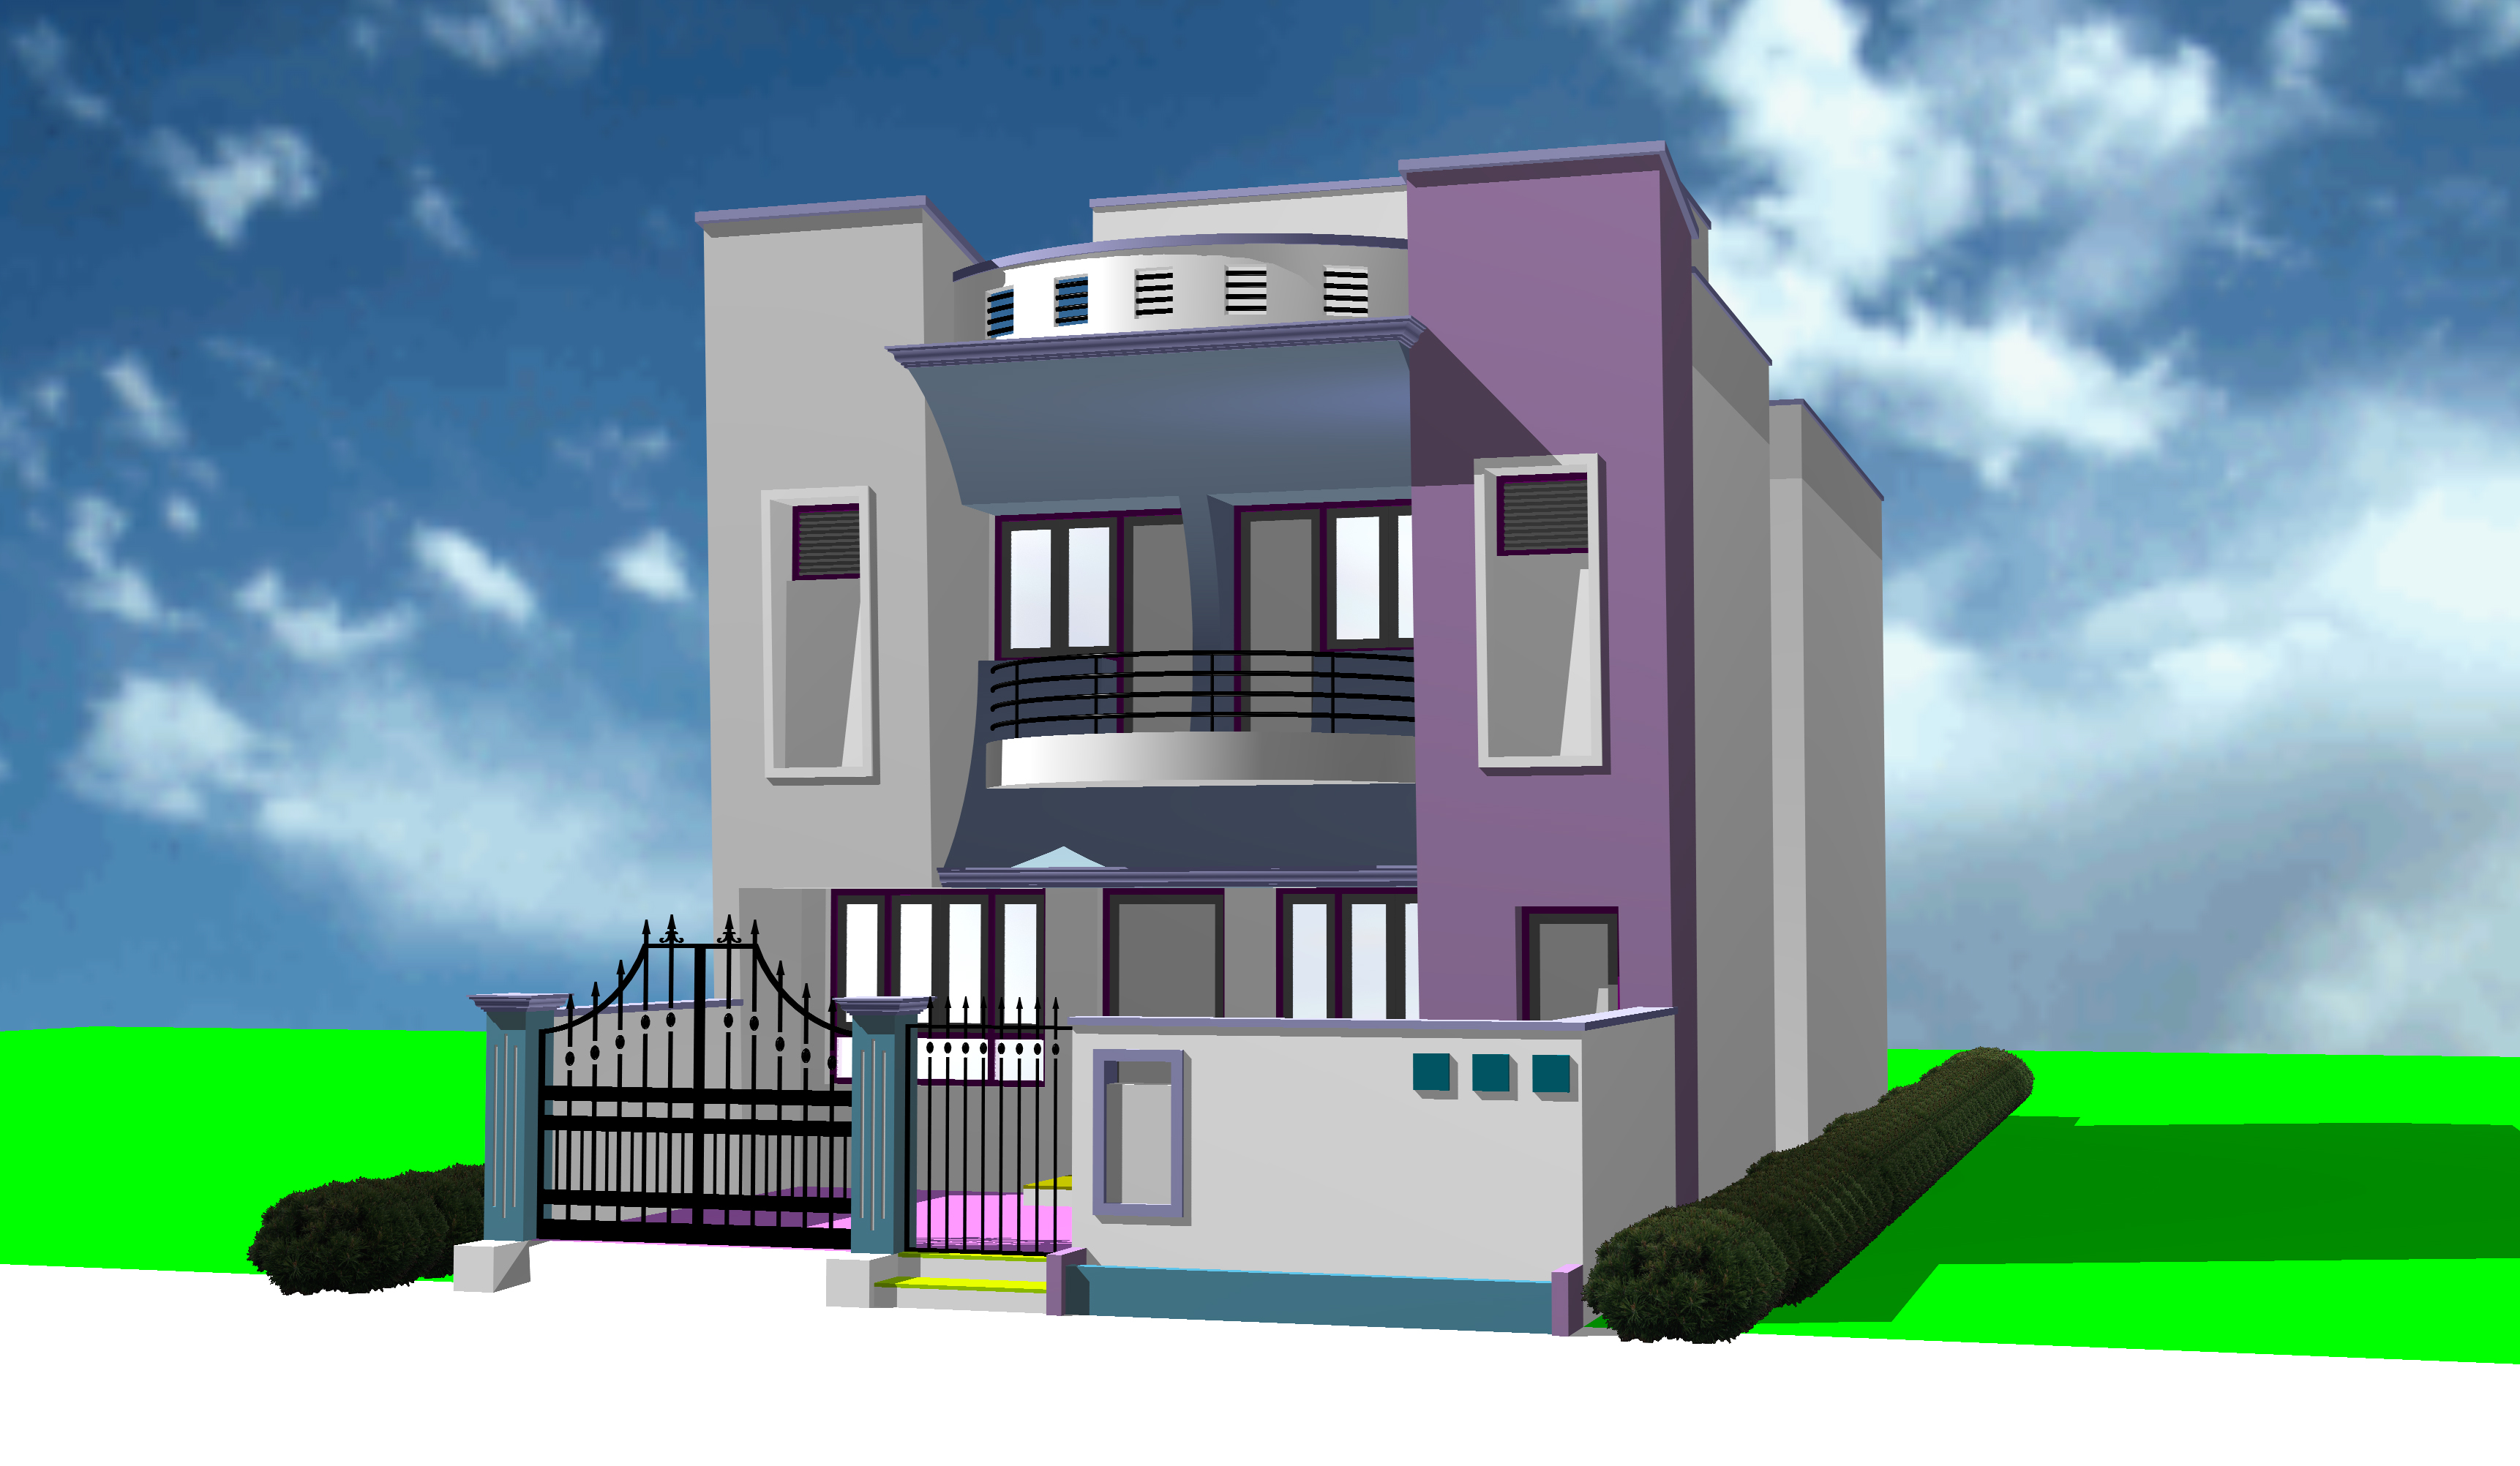 Interior Exterior Designing Design Plus Creation Dial 91 98989 73483 91 8866311941 Email Design Plus111 Yahoo Com